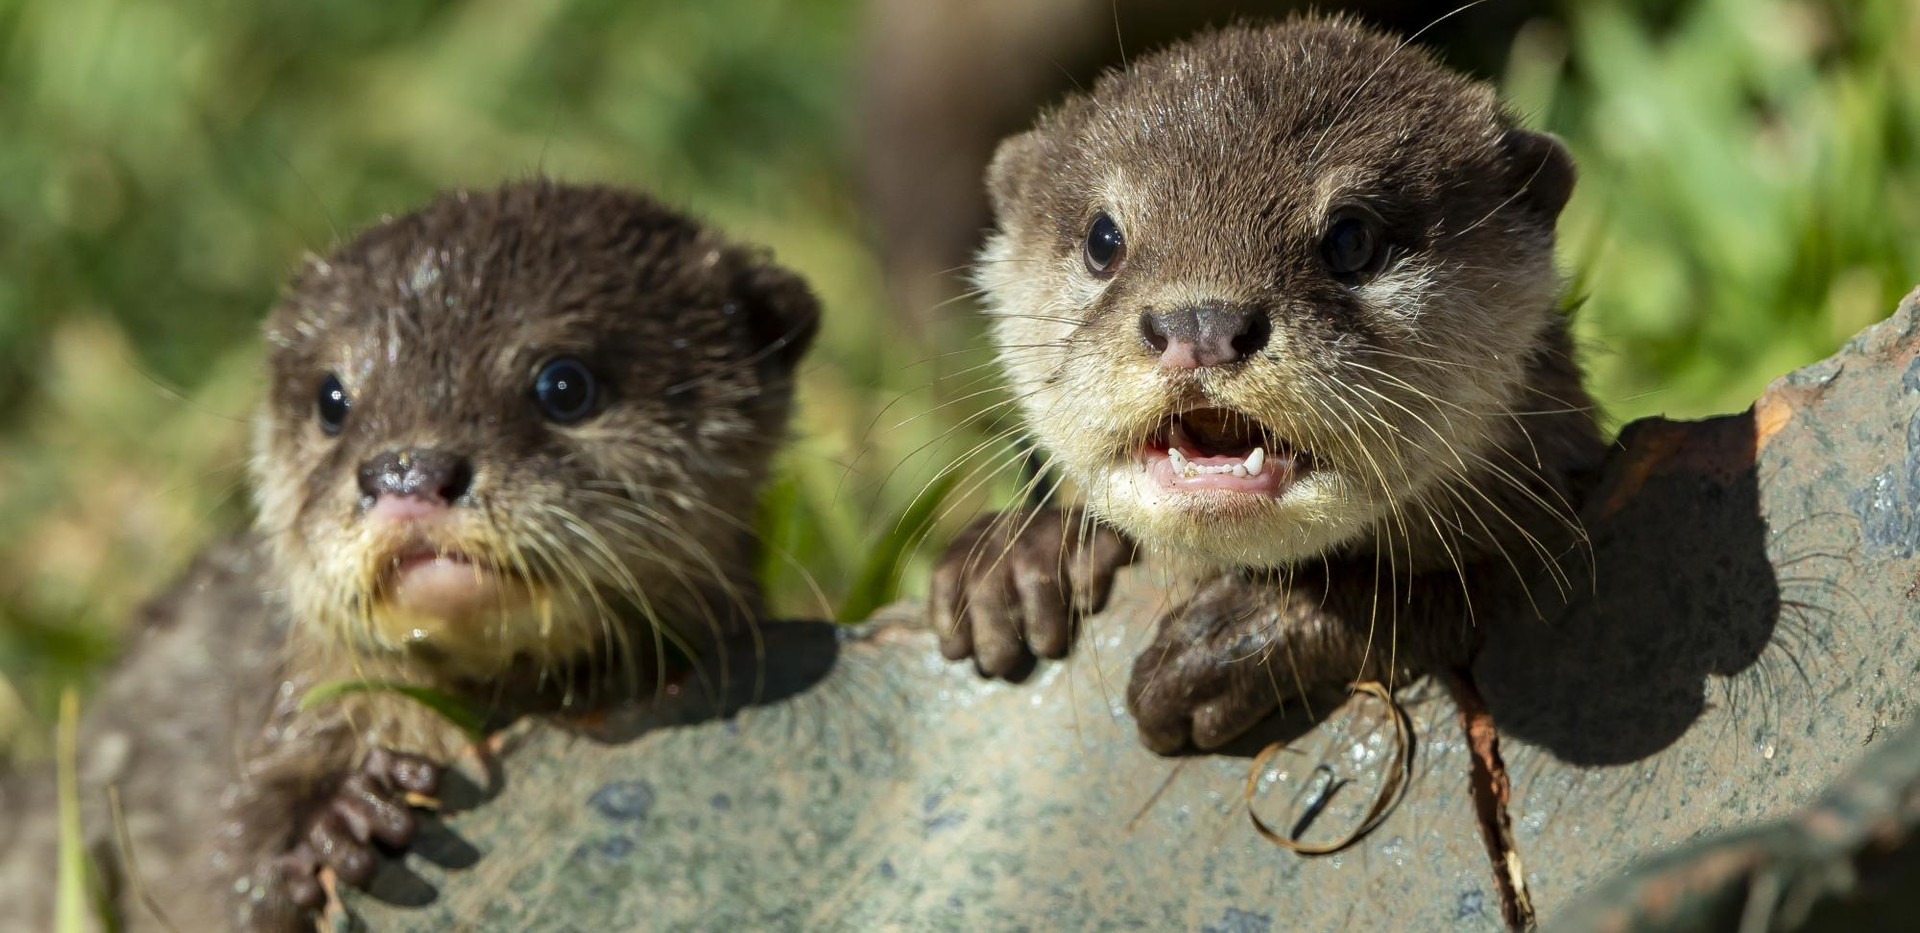 Otter pups at Taronga Western Plains Zoo (August 2019)